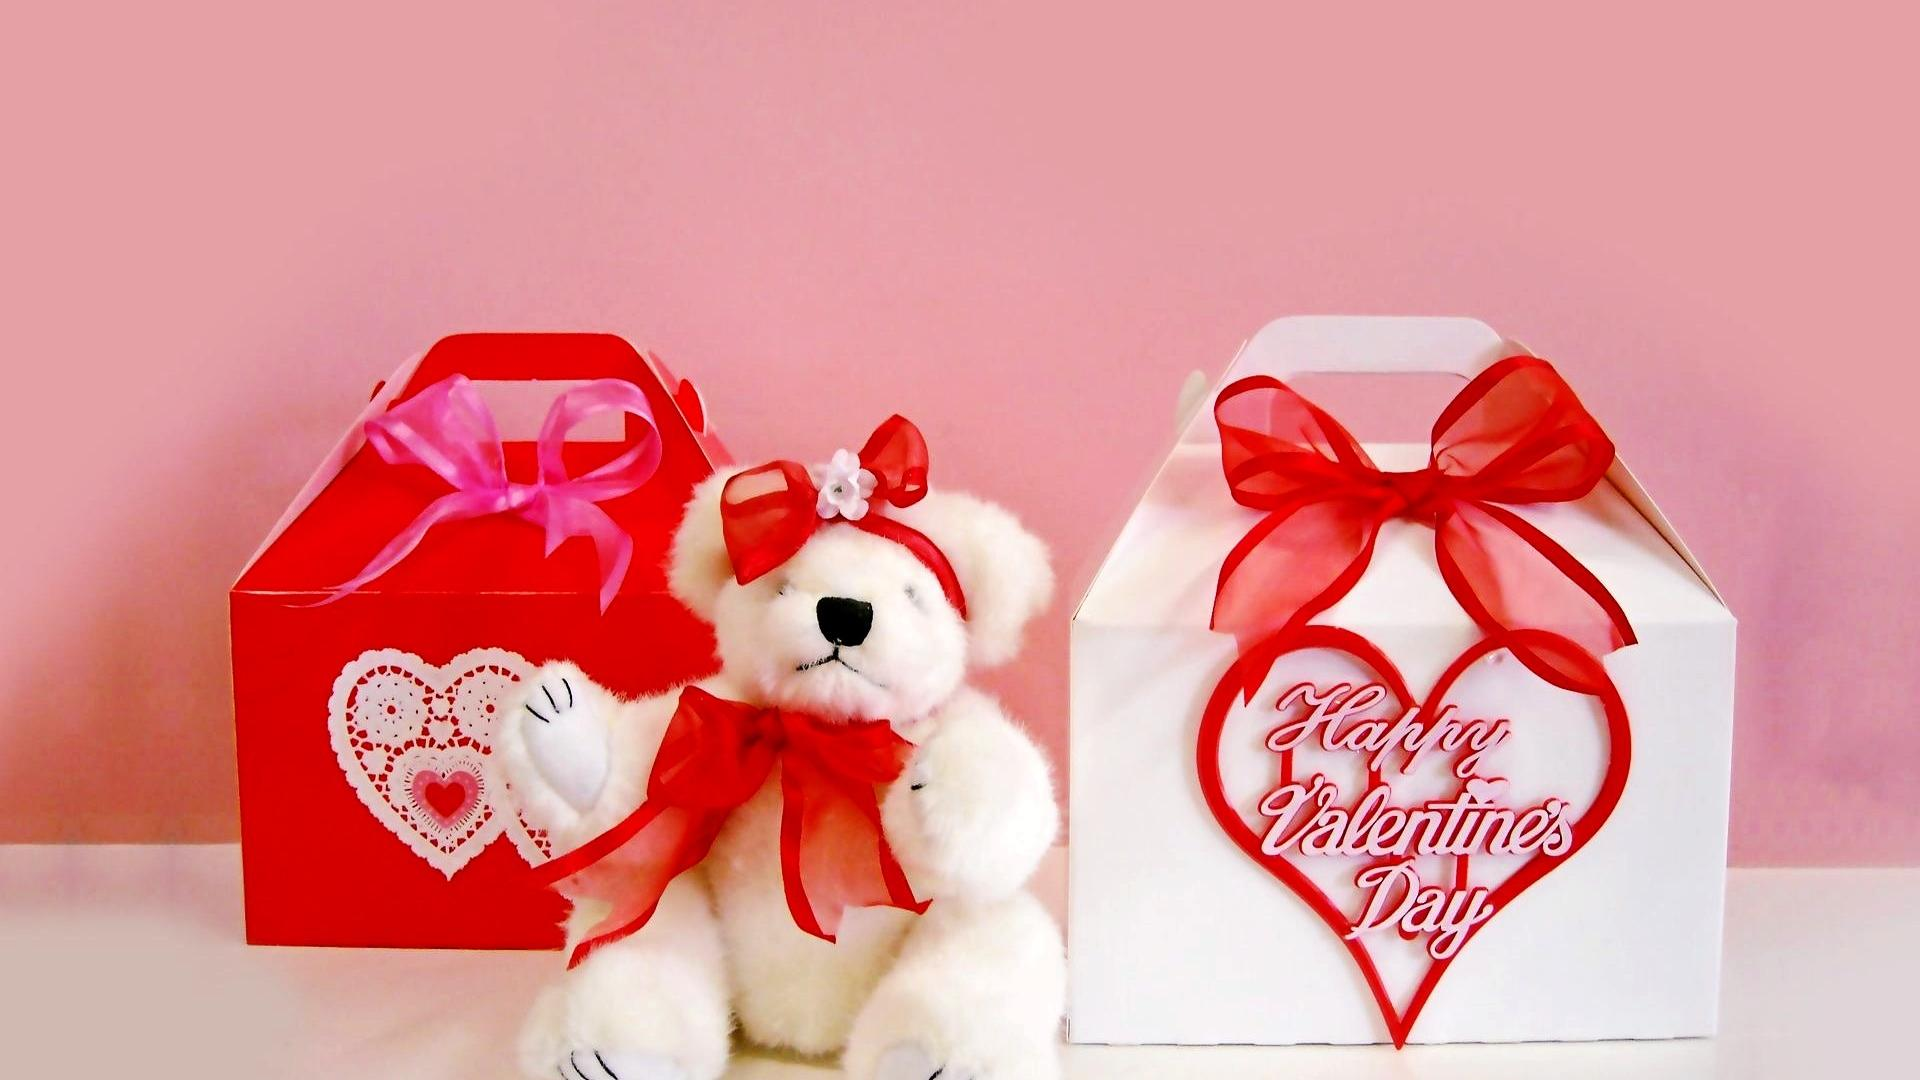 Hd wallpaper collections high definition true quality hd happy valentines day gifts hd wallpaper negle Gallery